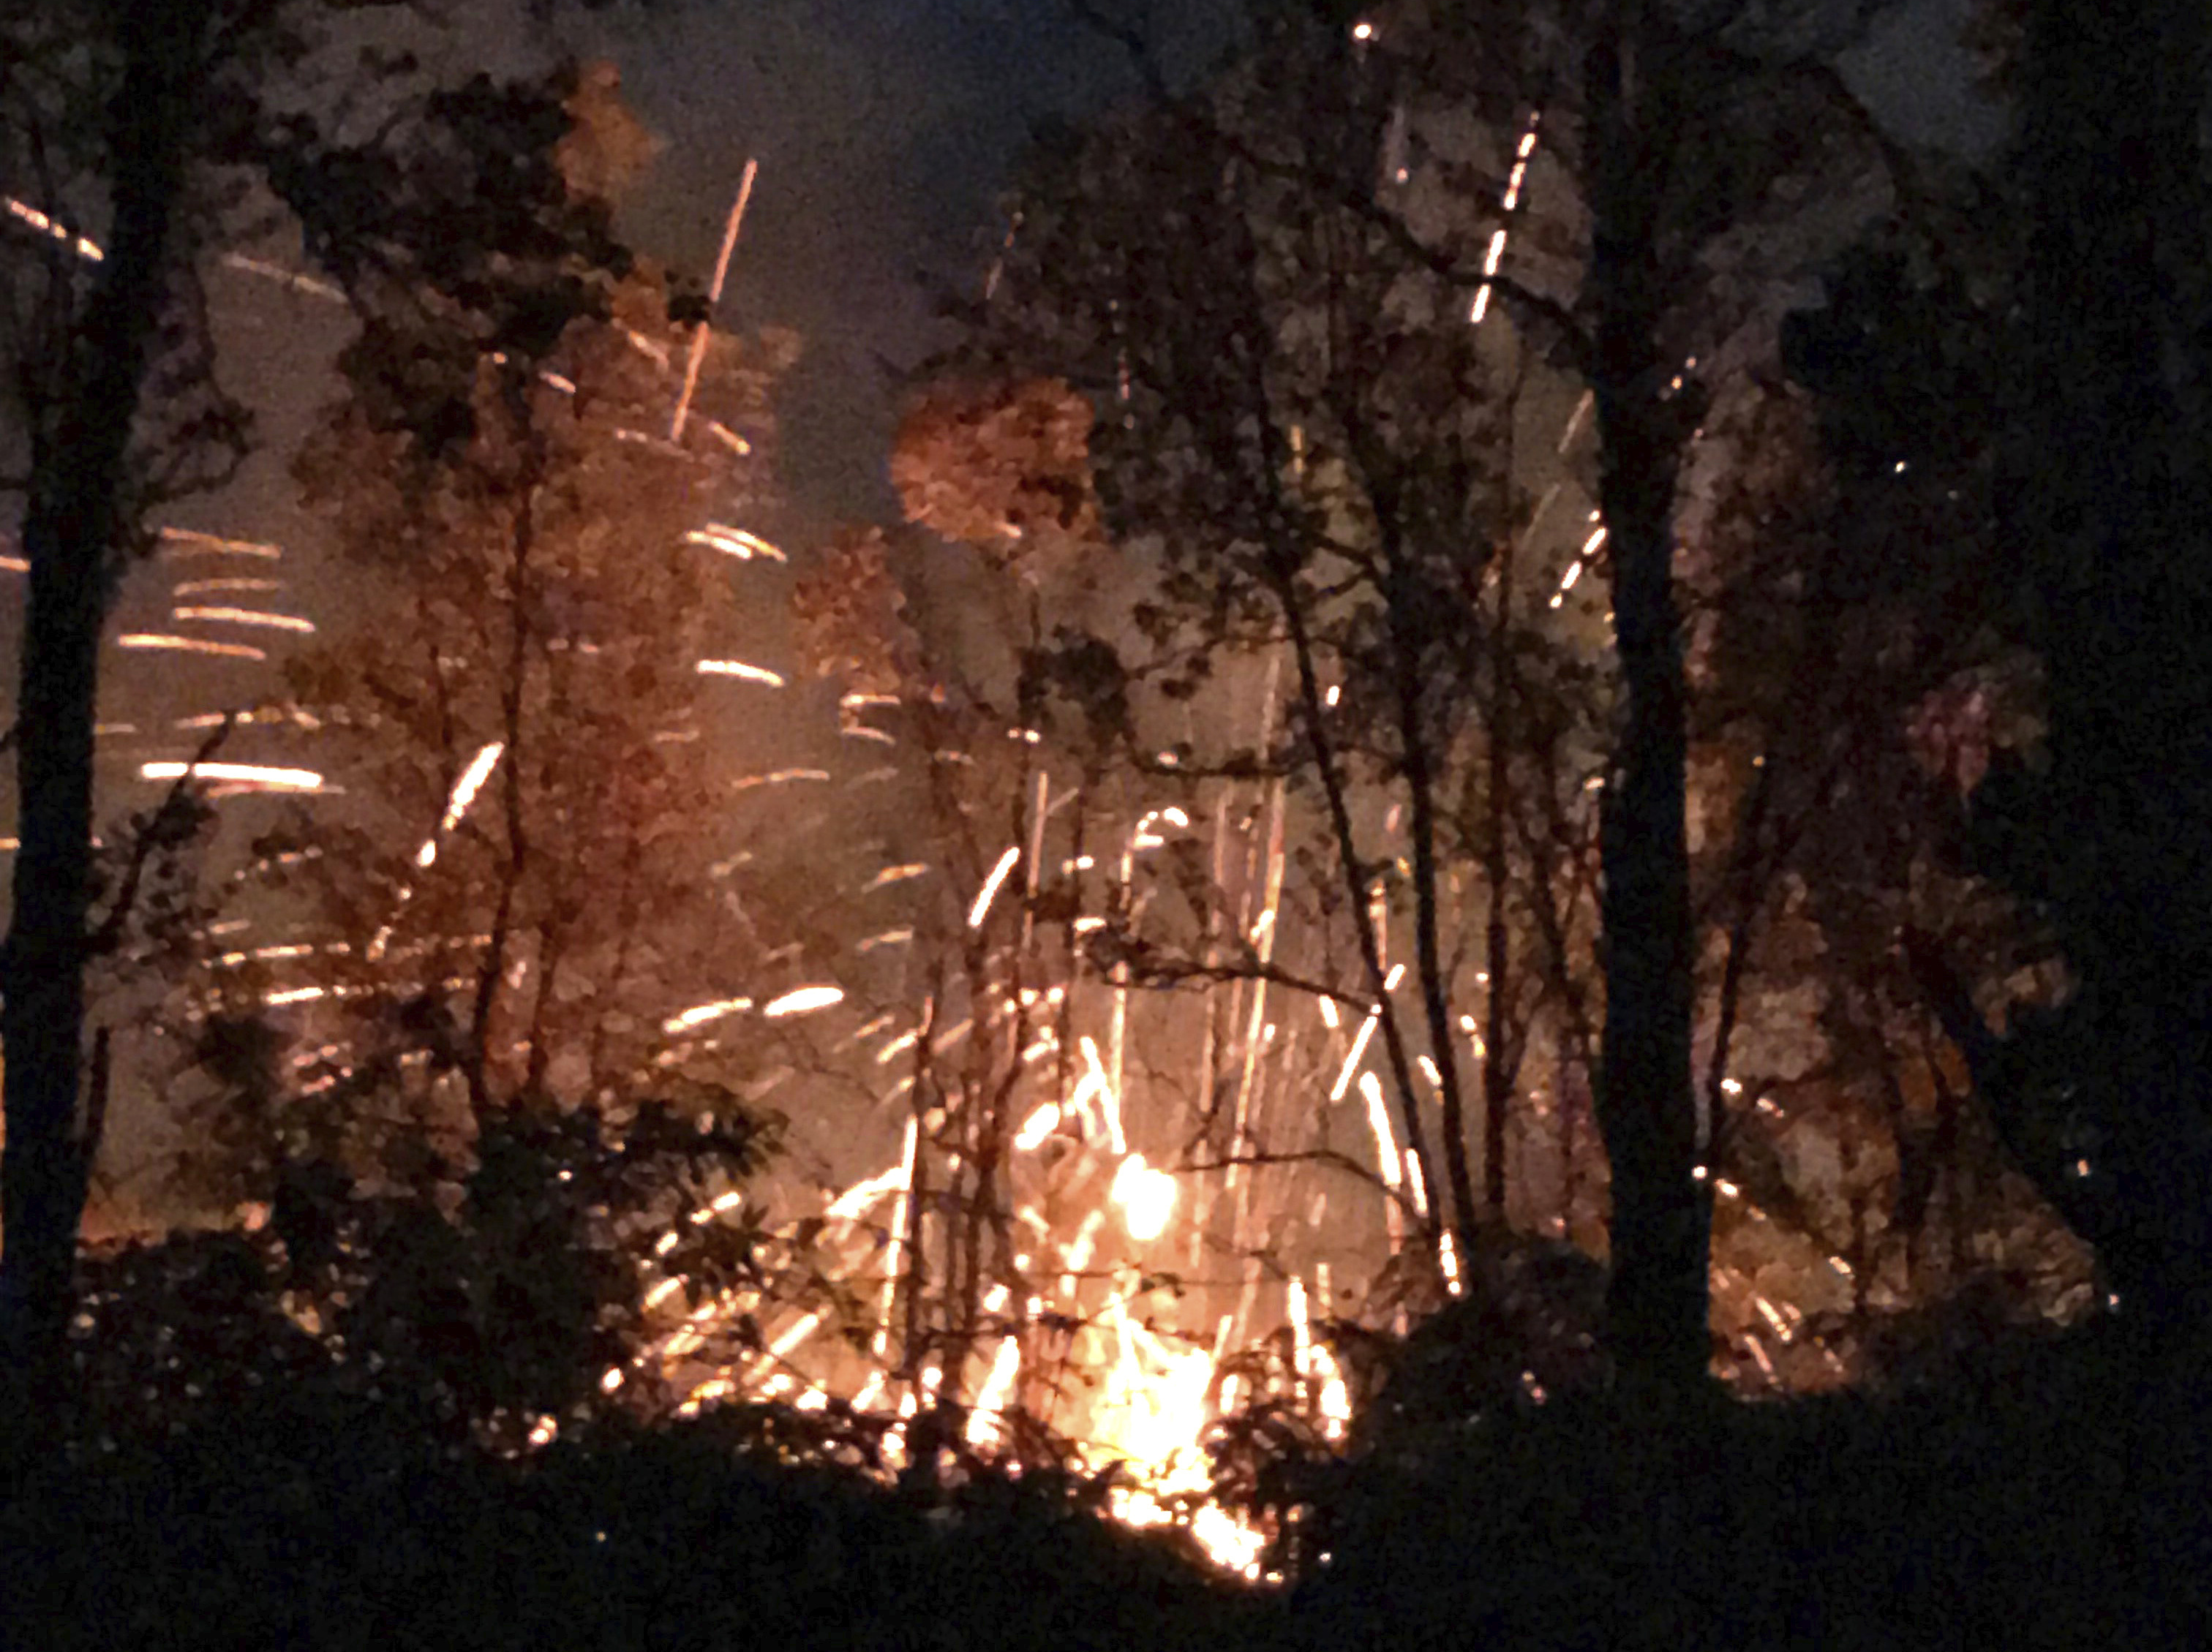 This photo provided by Shane Turpin shows results of the eruption from Kilauea Volcano on Hawaii's Big Island Friday, May 4, 2018.